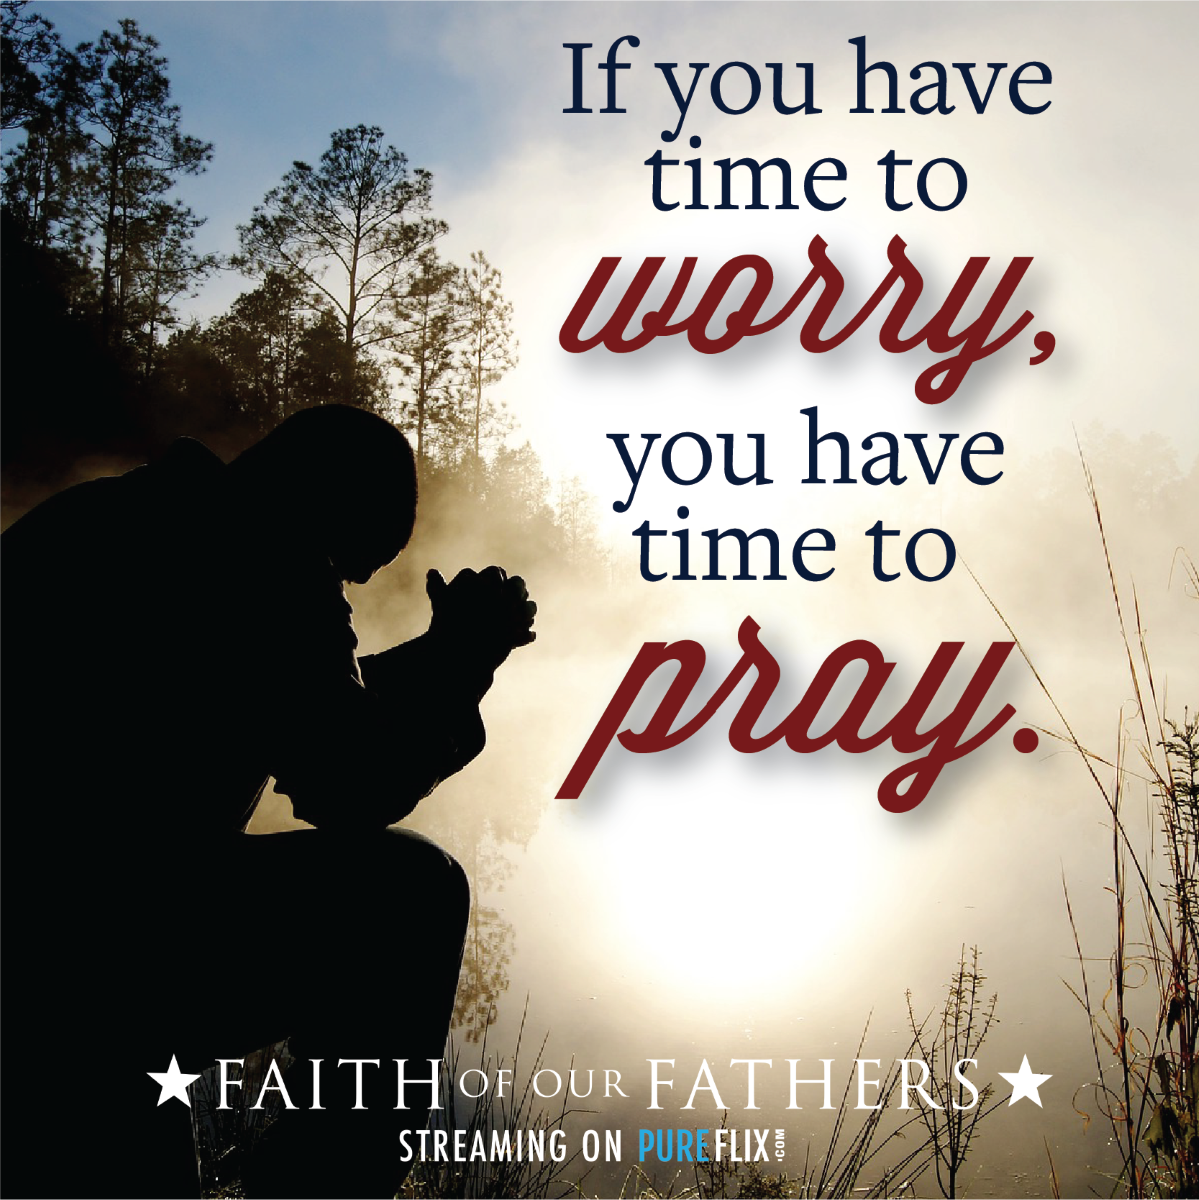 To #worry is a waste of time  Just pray  #PowerofPrayer